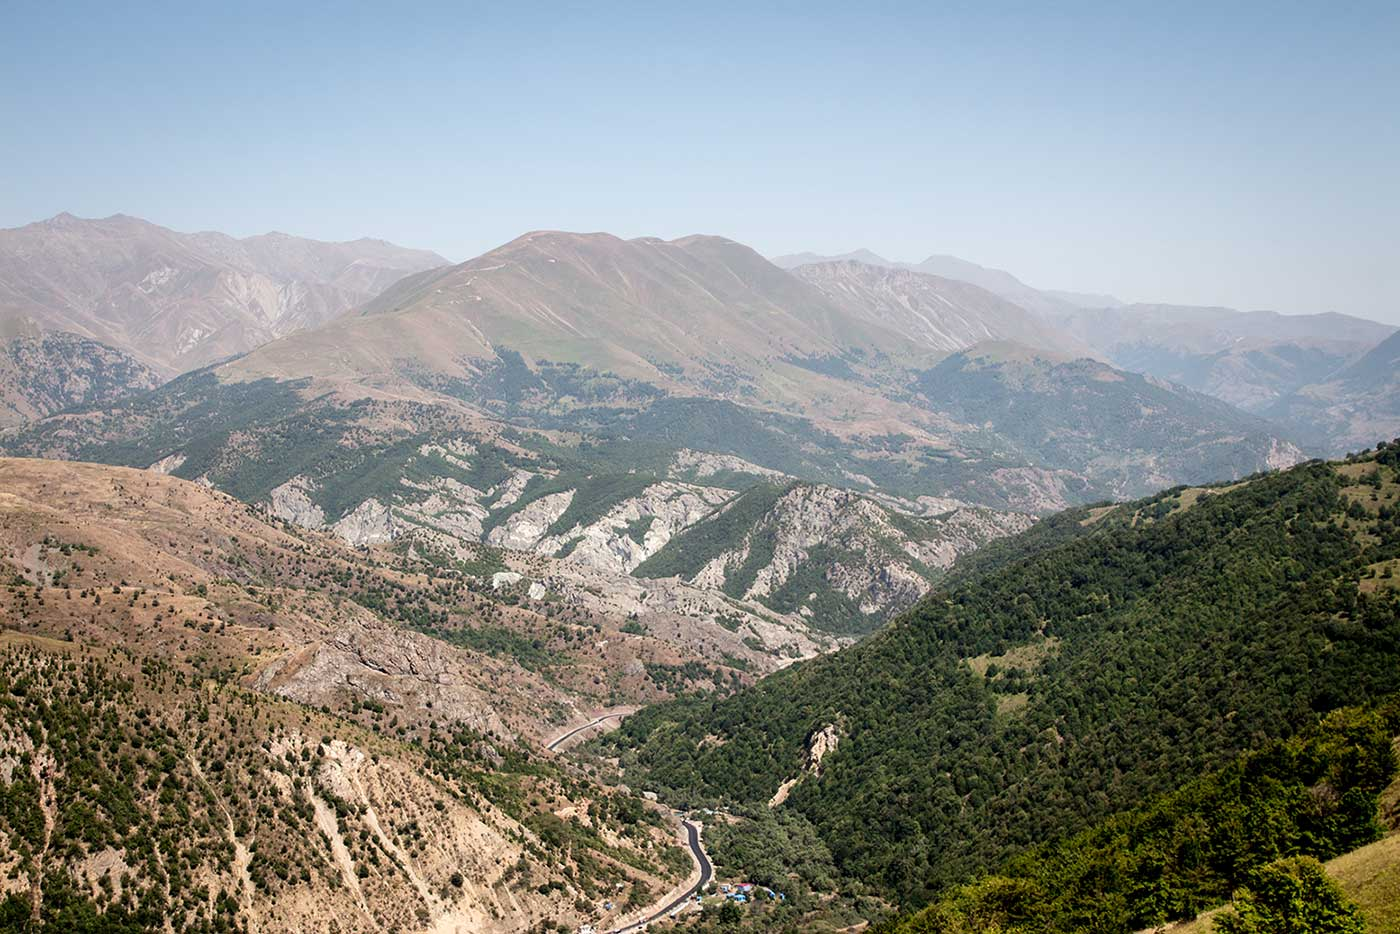 The first view of Nagorno-Karabakh, as the road emerges from the mountain pass from Armenia.